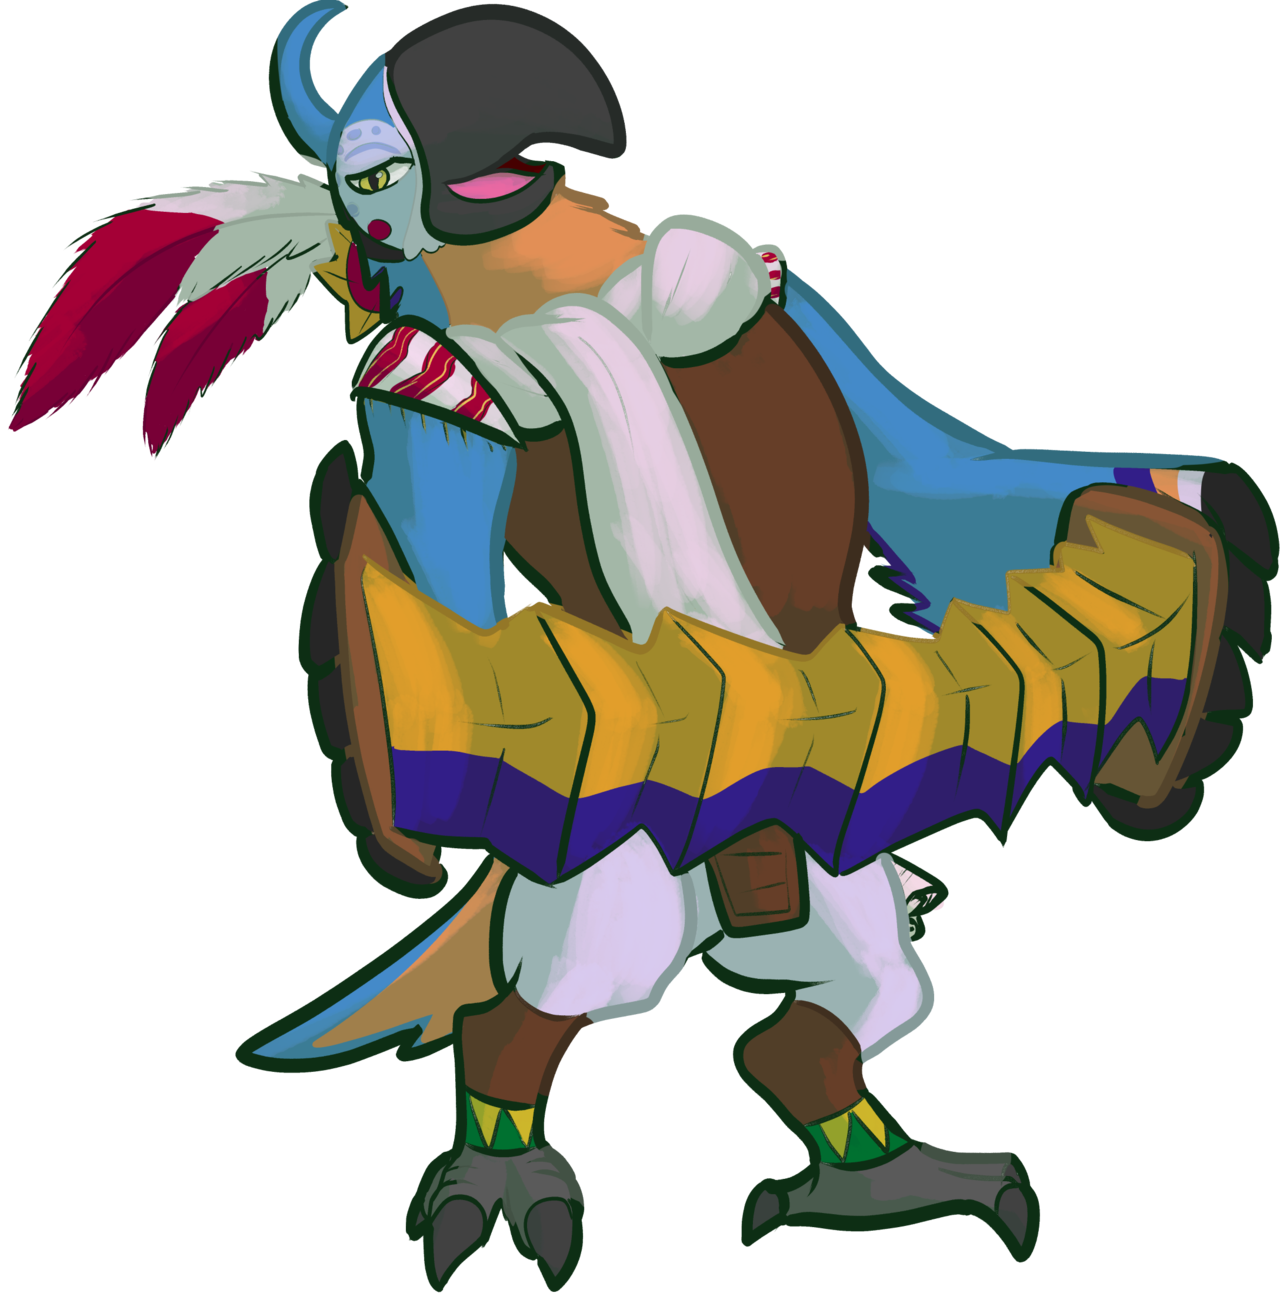 Kass (Zelda: Breath of the Wild) by DoctorNuclear on DeviantArt.